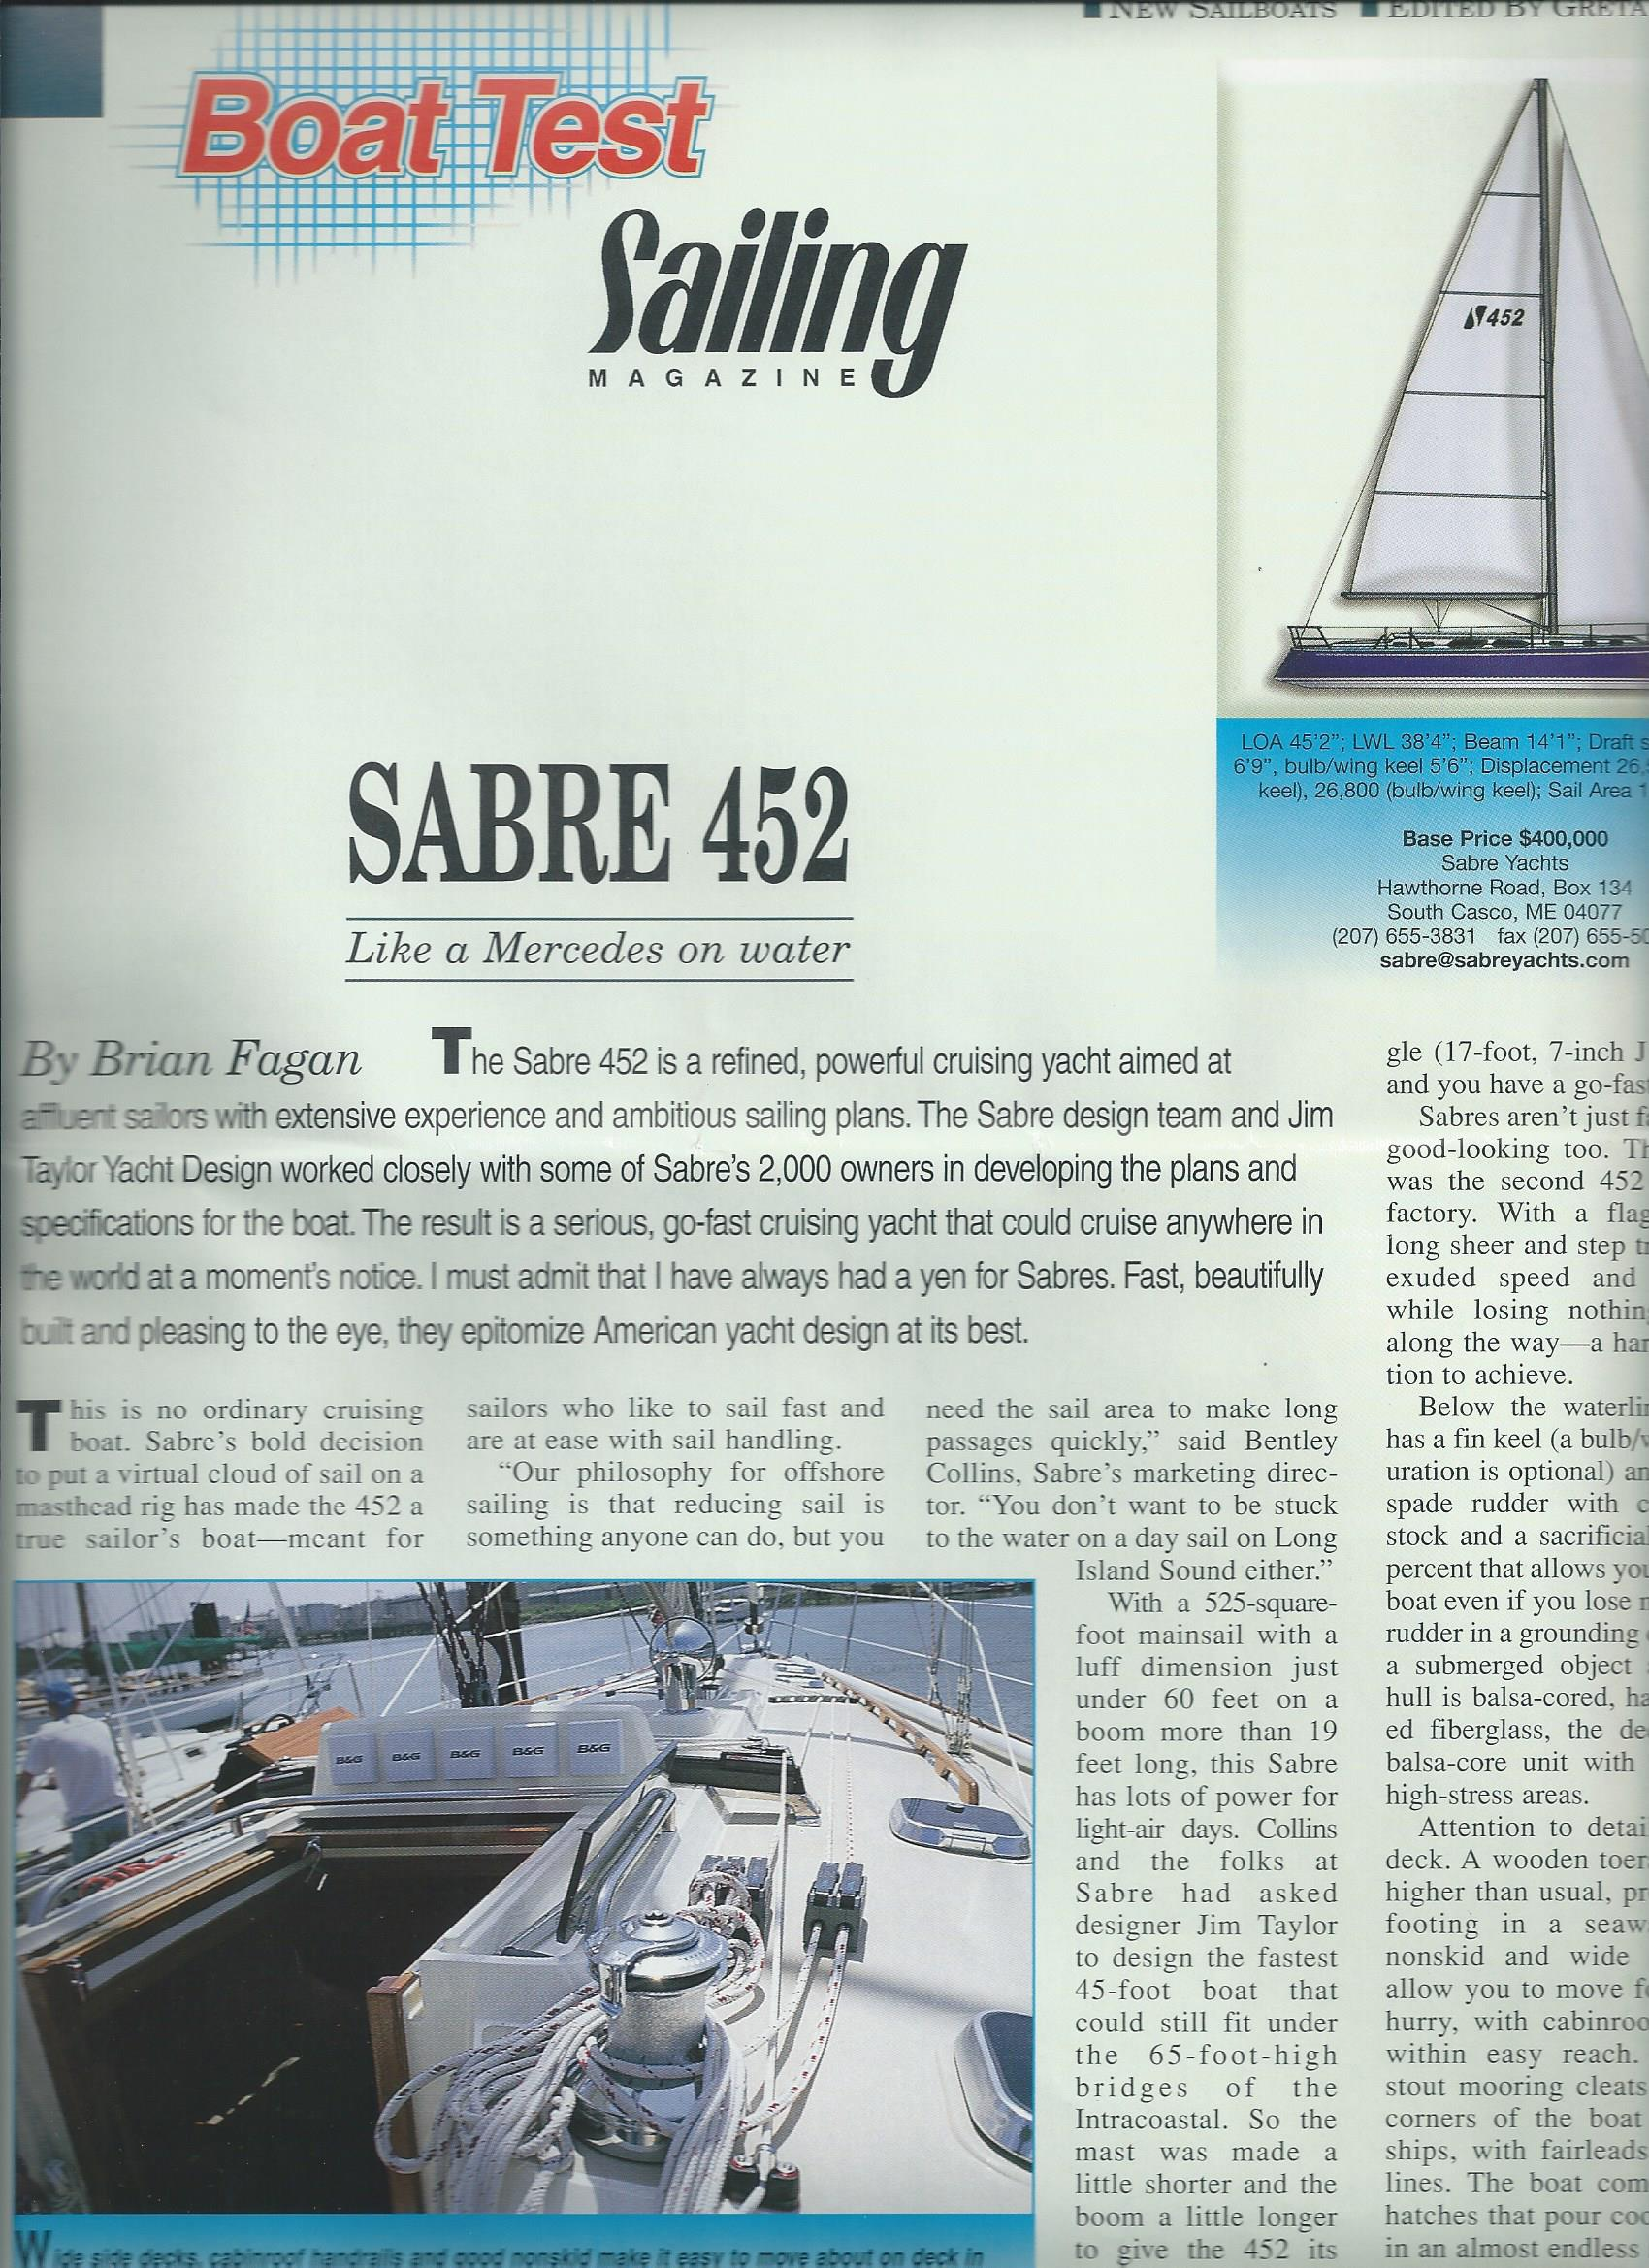 C:\Users\Jim Taylor\Desktop\JTYD\JT_Promo\WebSite\2016\Designs\Production\96-Sabre 452-456\Sbr 452_SM Boat Test.jpeg